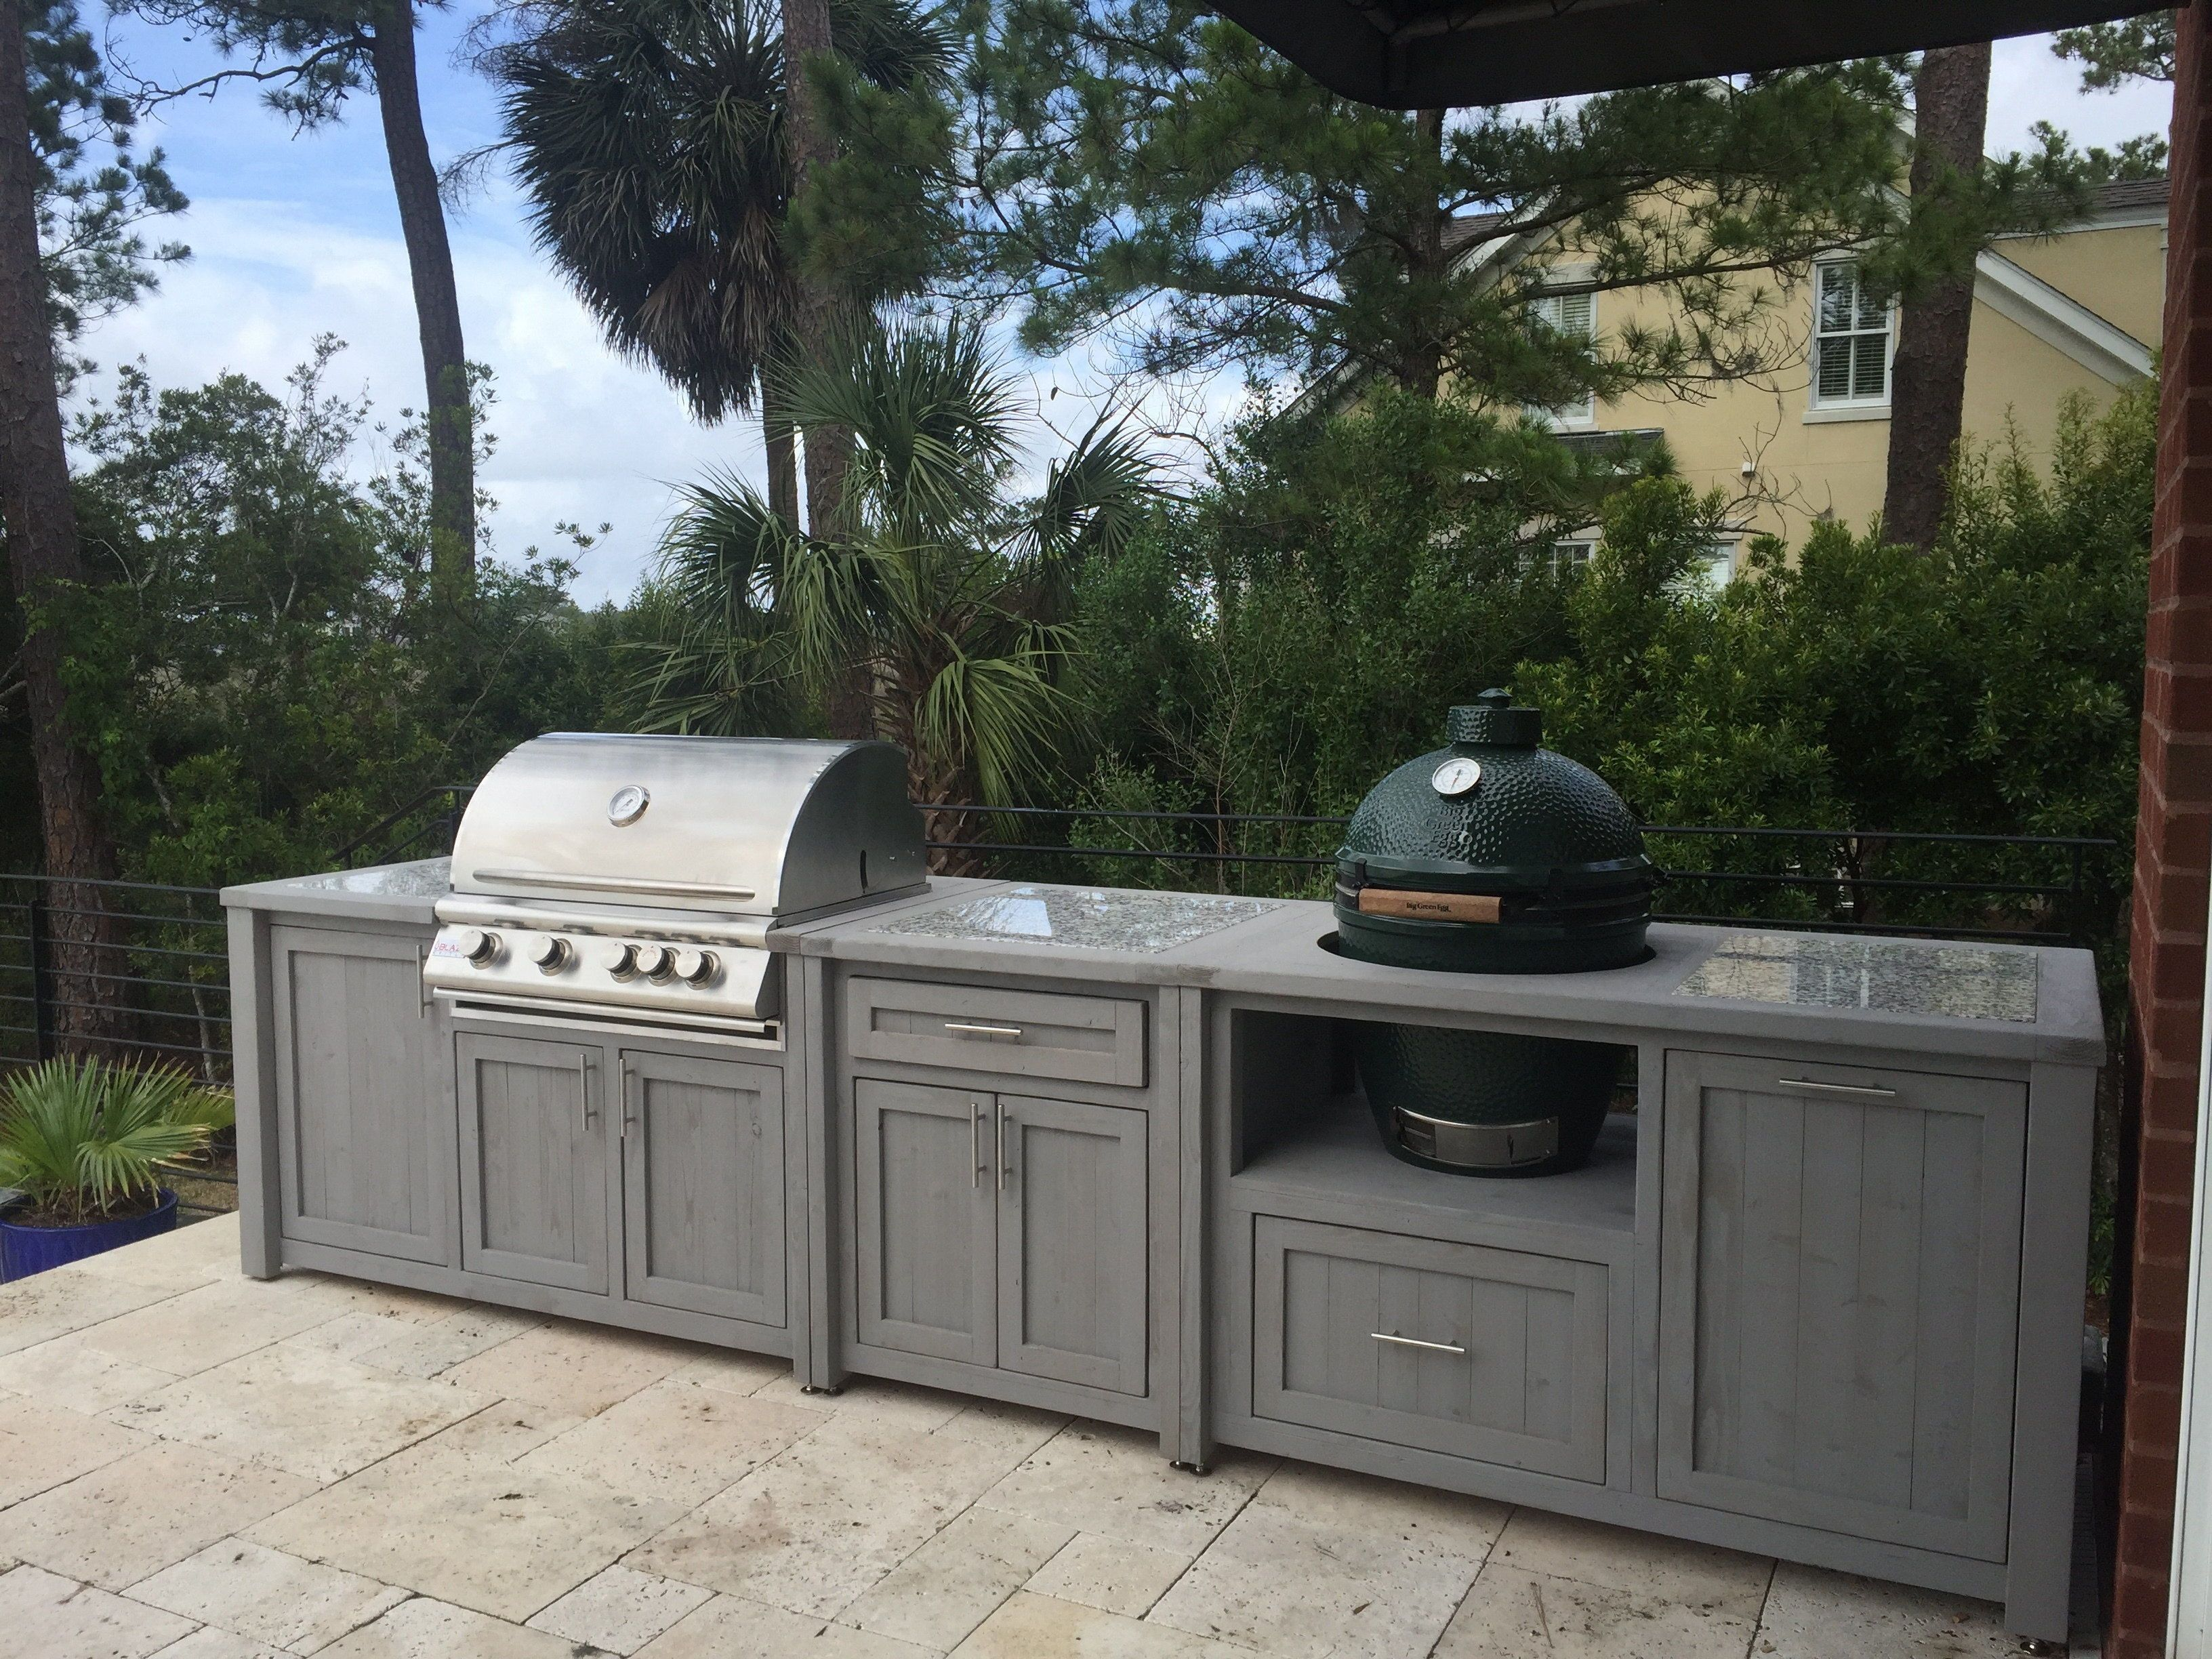 Pin By Rustic Woodworx On Big Green Egg Grill Tables Cabinets In